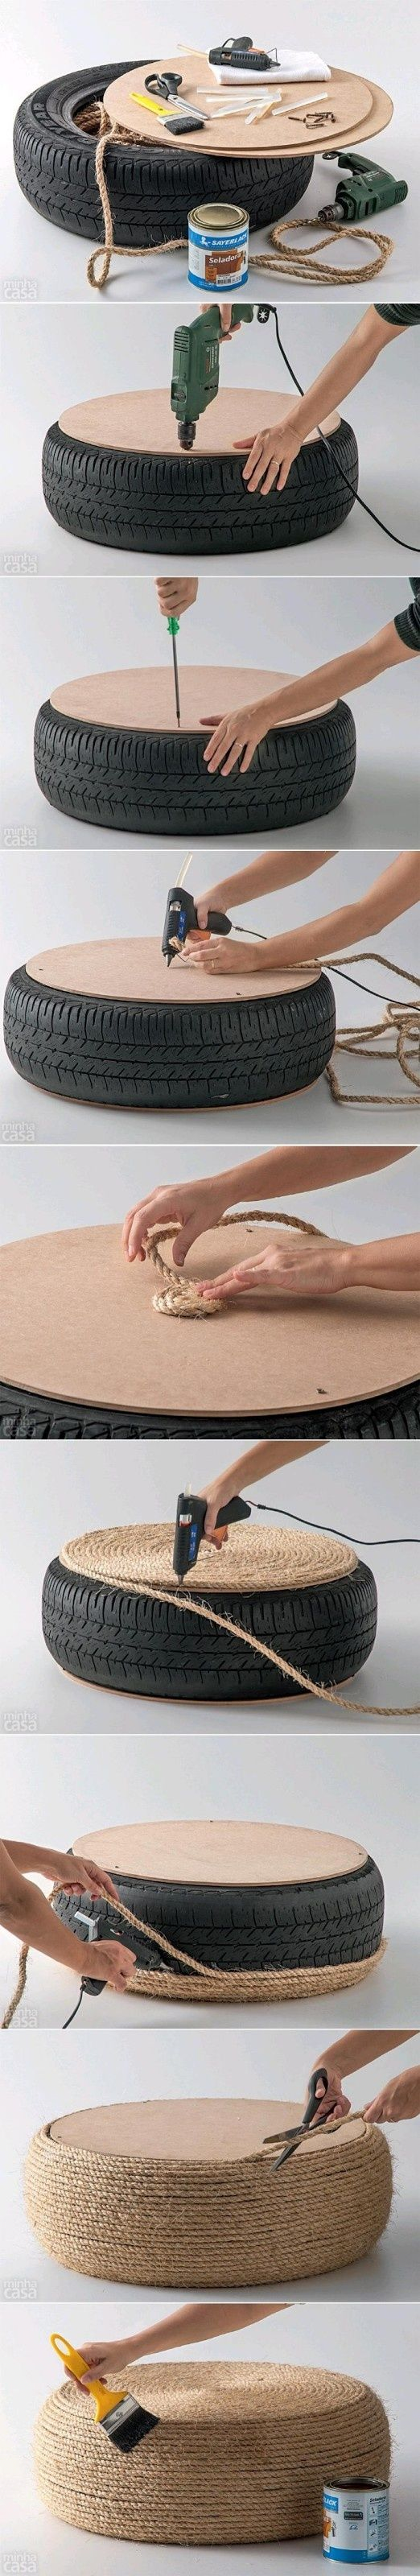 DIY Tire Ottoman... what a transformation...